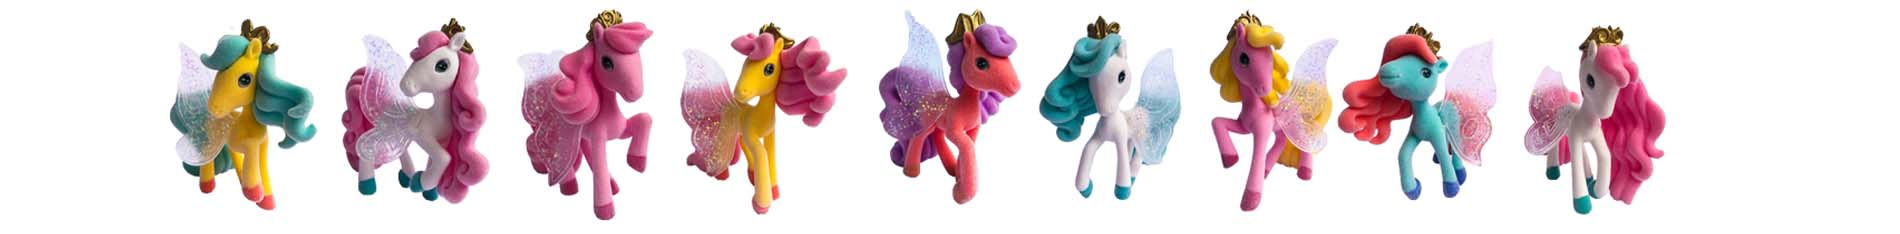 Colección completa Lovely Charm Pony II Distribox